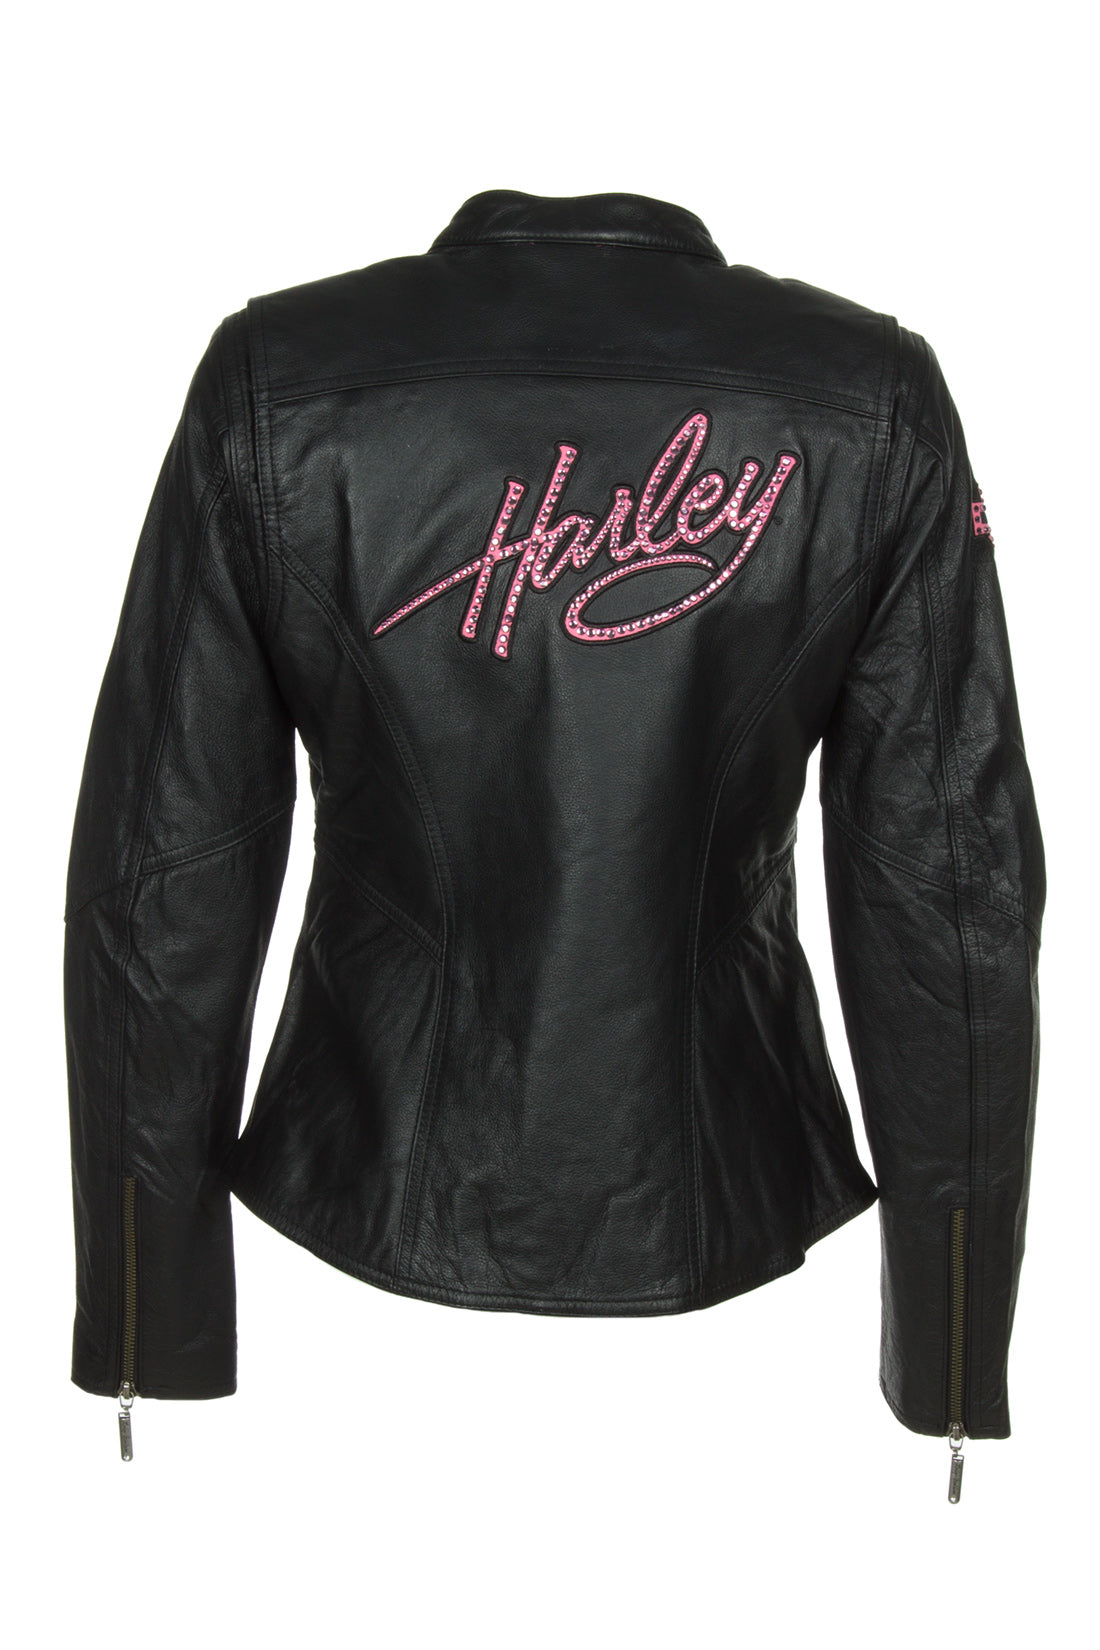 Harley-Davidson 98022-12VW Womens Pink Label Embellished Black Leather Jacket